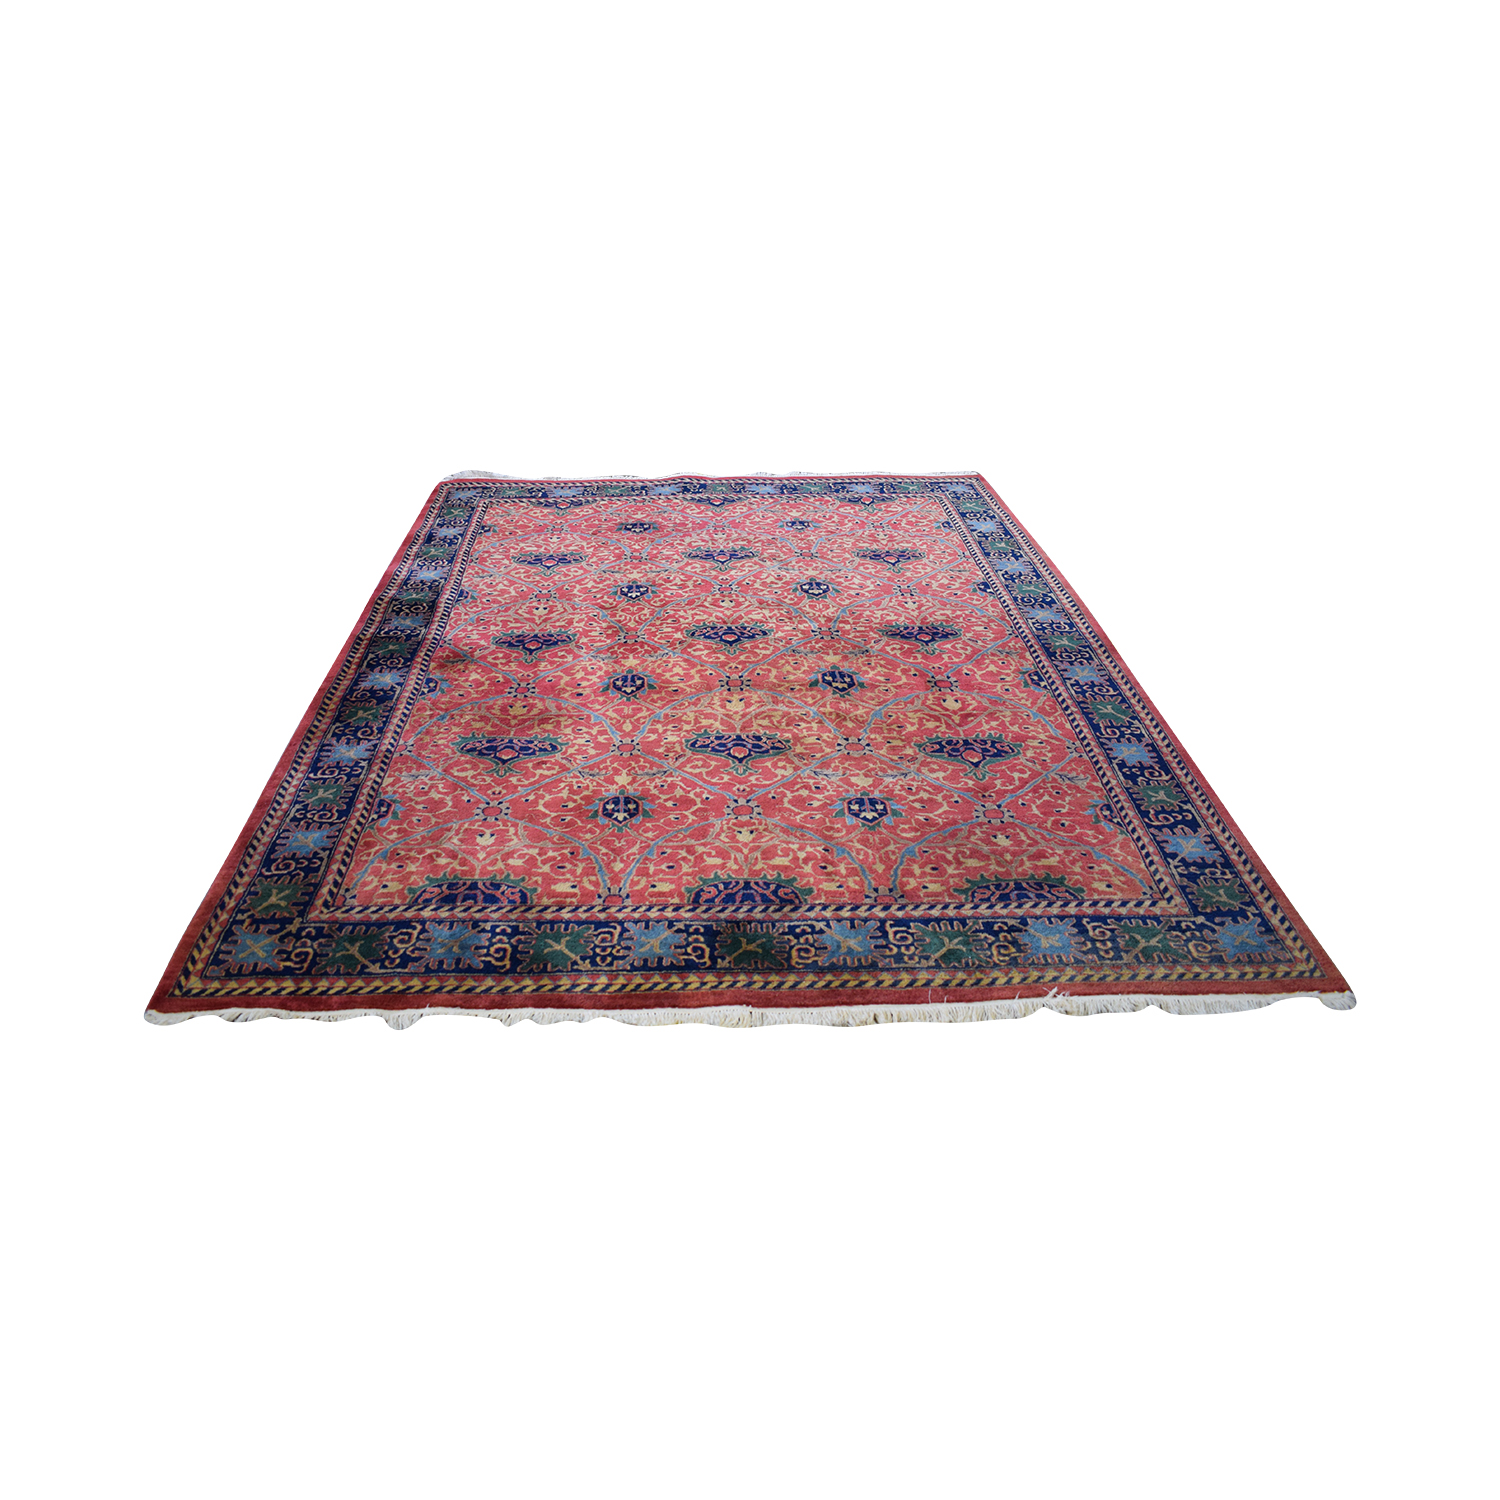 Persian Wool Rug Decor